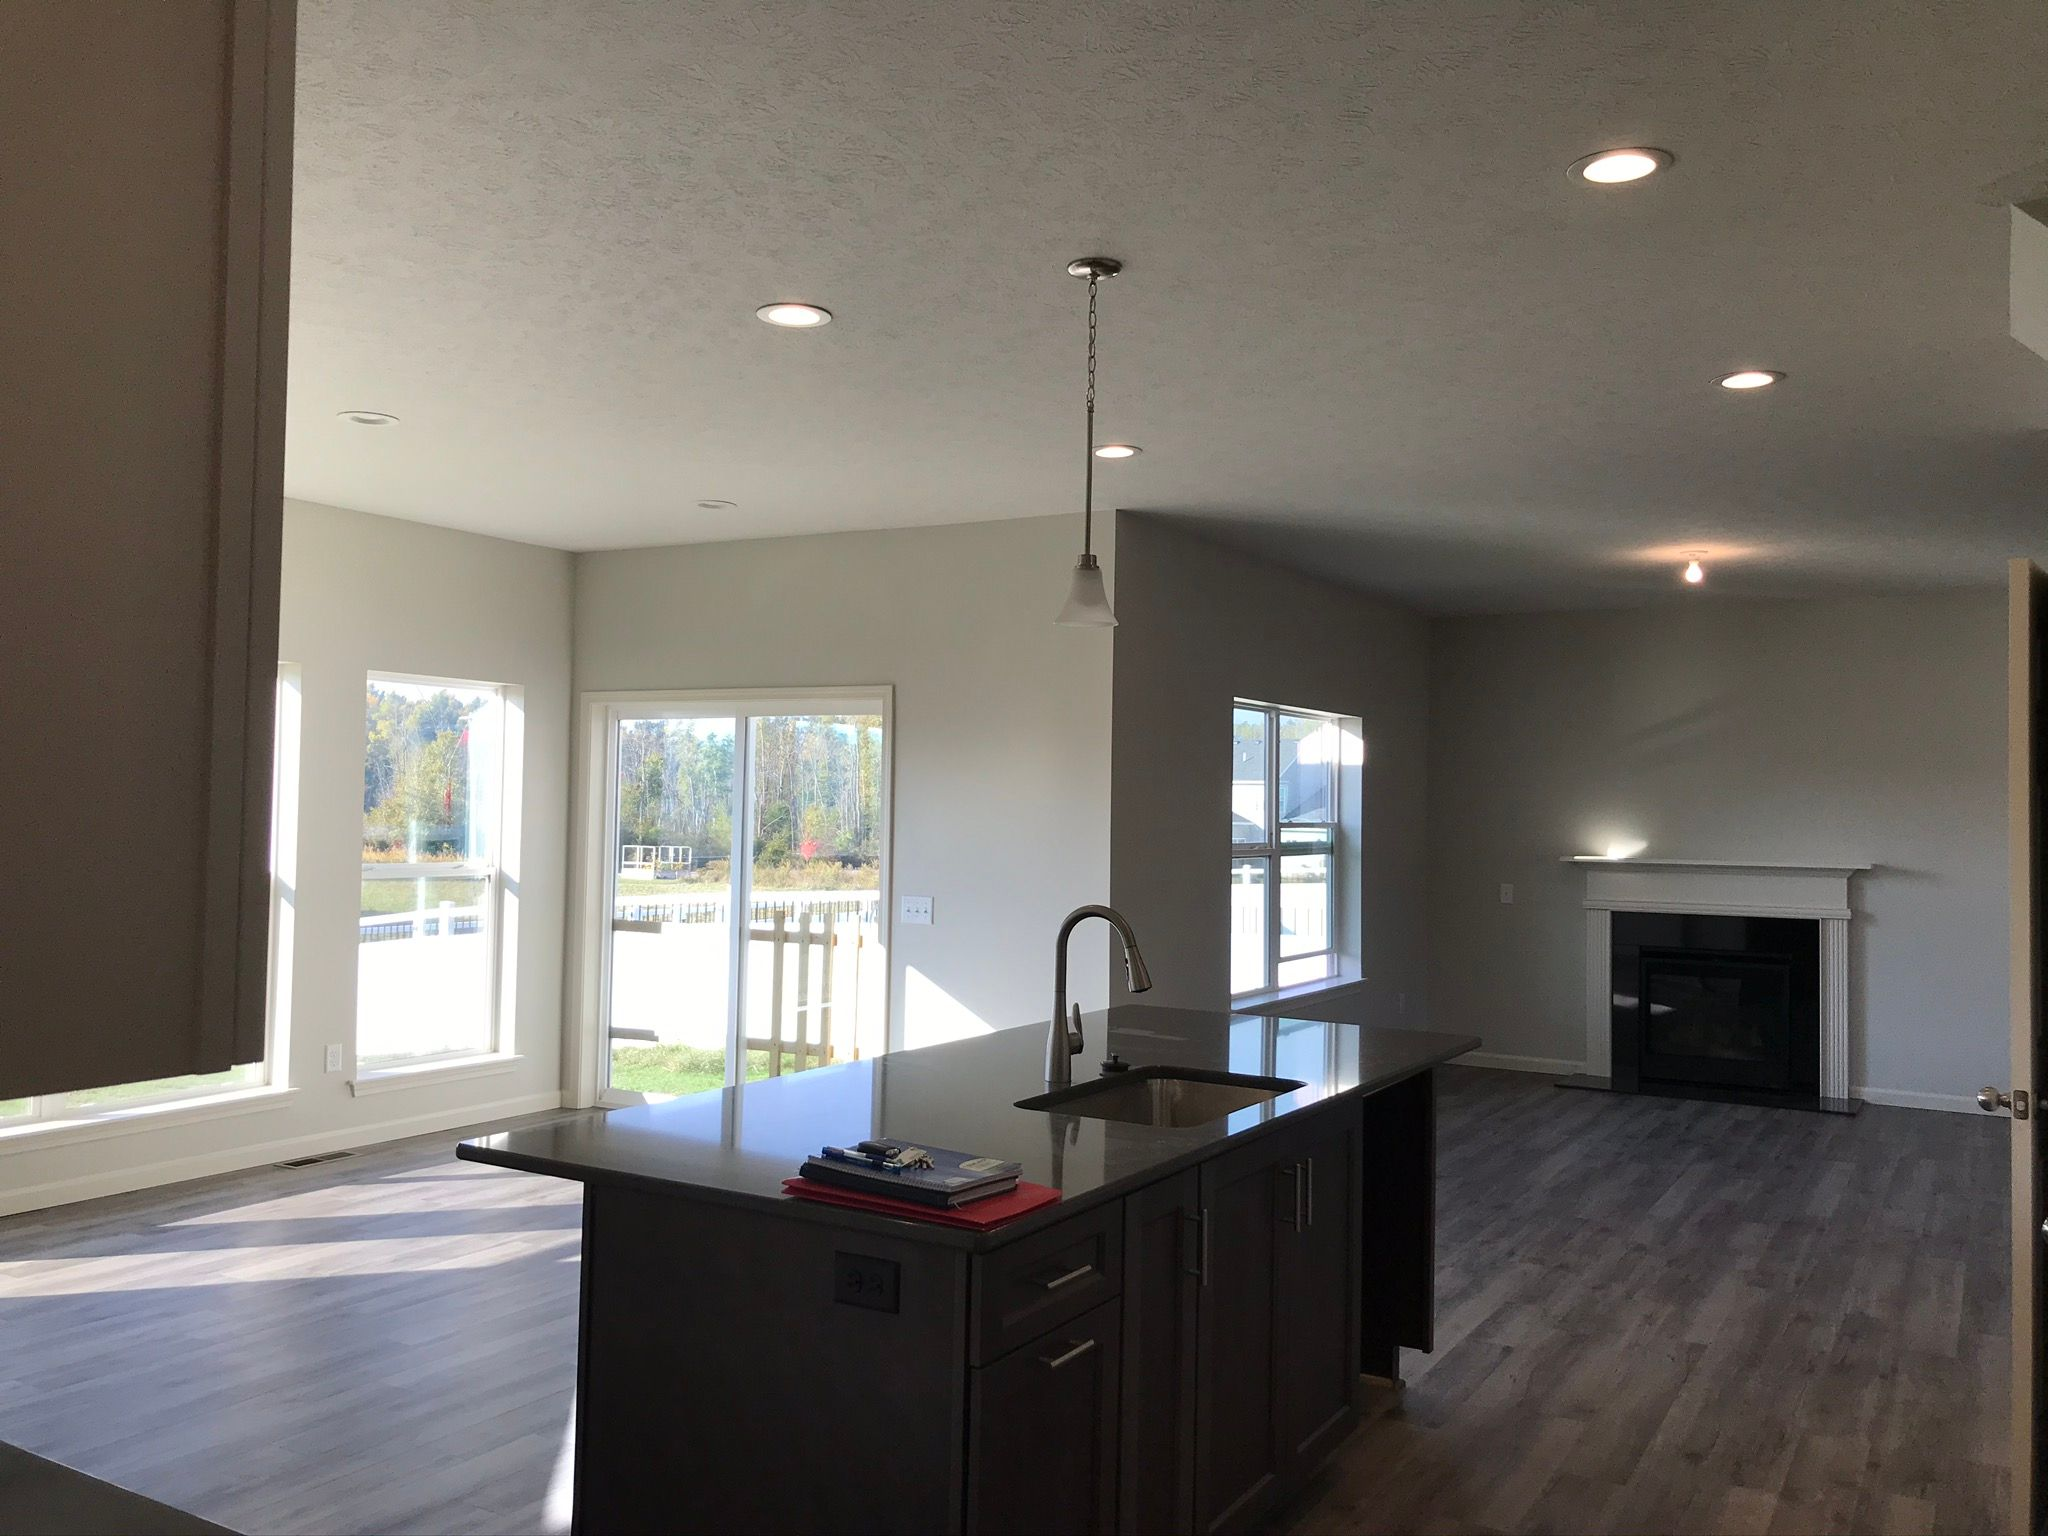 Kitchen featured in the Saginaw II By Faber Builders in Rochester, NY